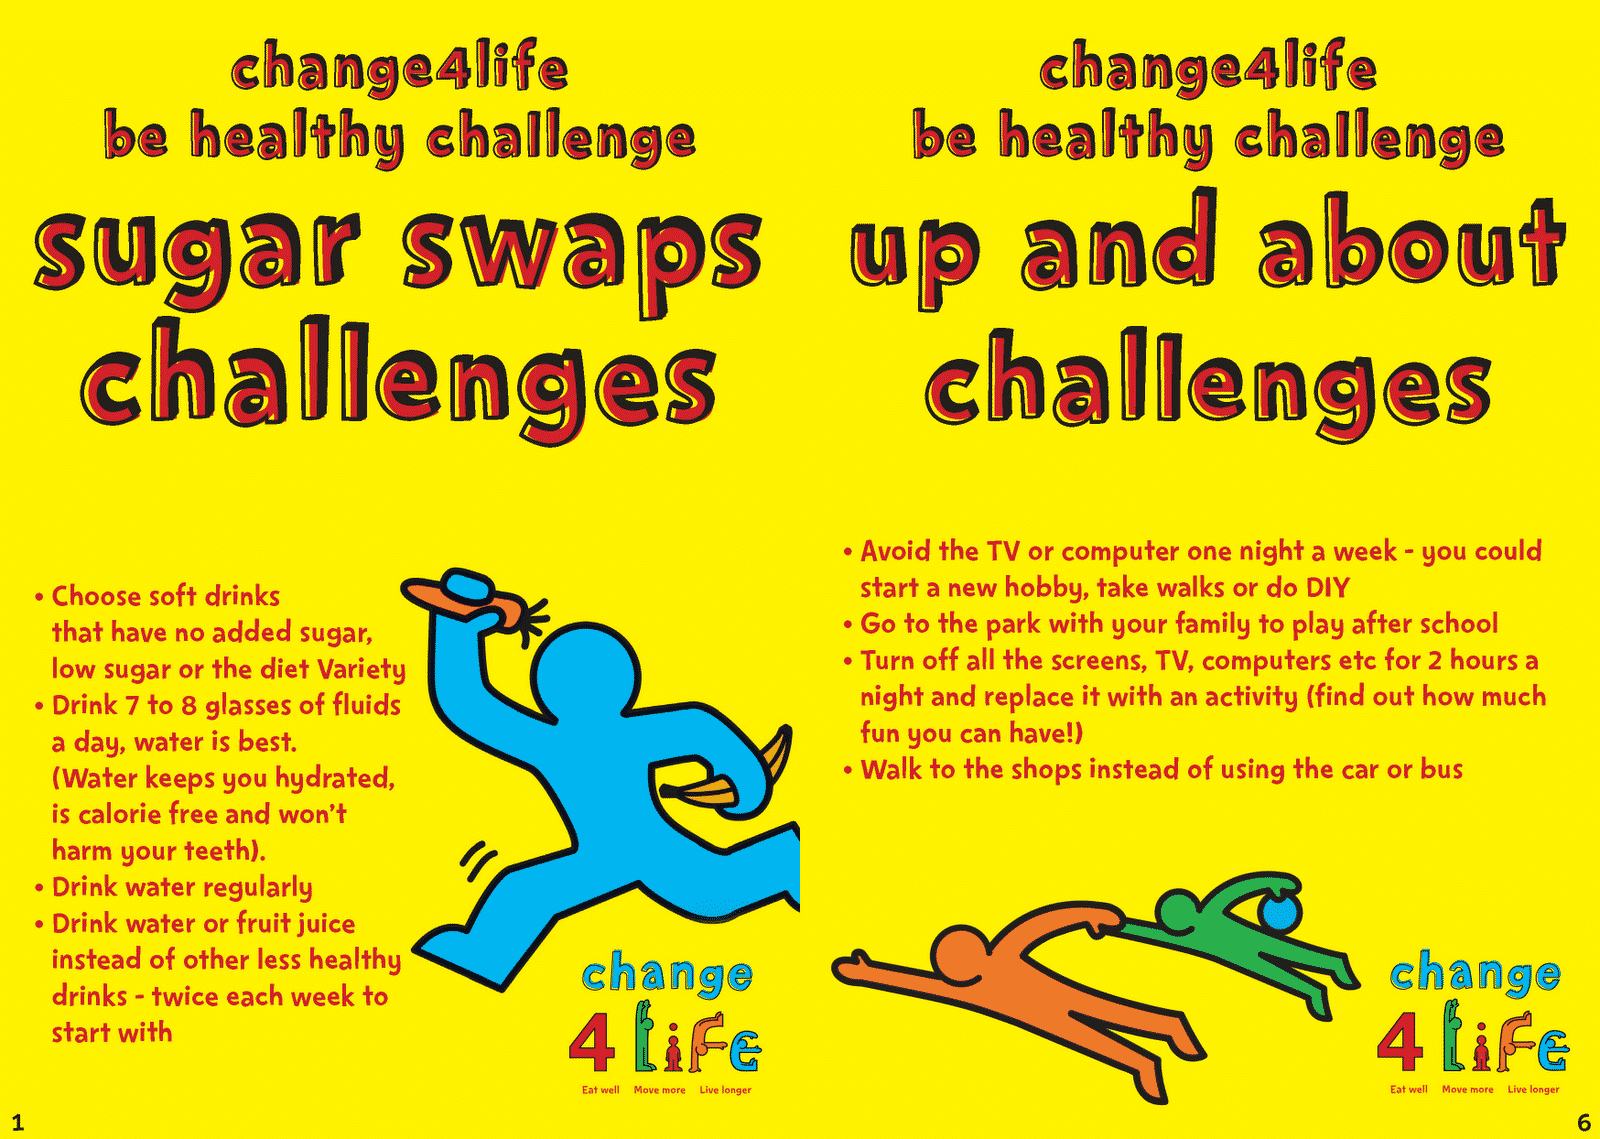 Change4Life Be Healthy Challenges list[1]_Page_2-1